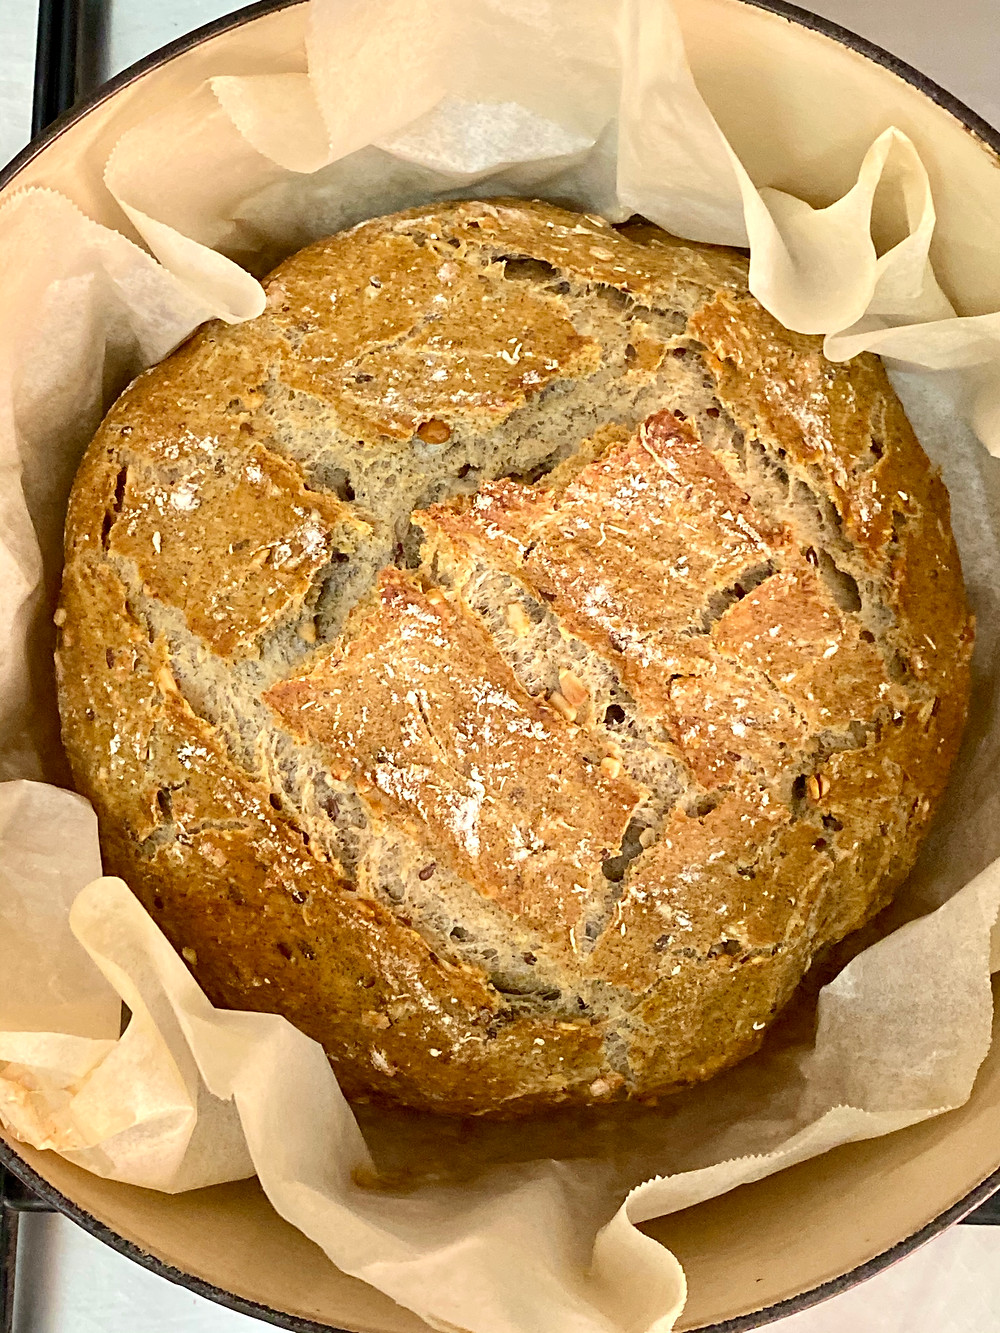 A whole wheat no kneading  bread made in a dutch oven